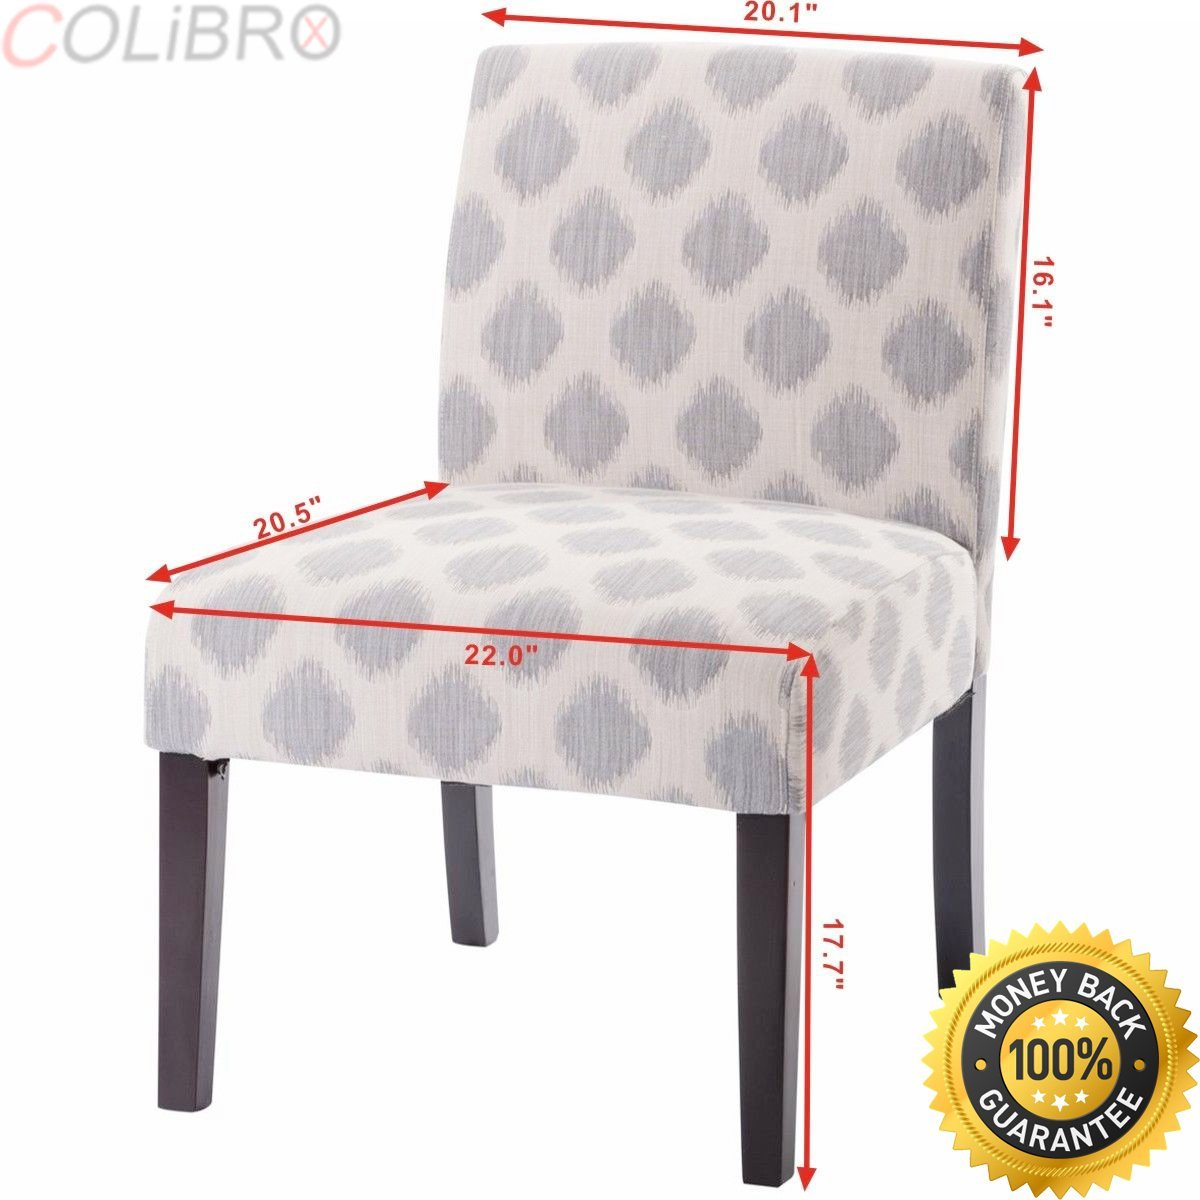 affordable upholstered dining chairs gray target cheap side find get quotations colibrox chair armless linen fabric wood modern living room furniture